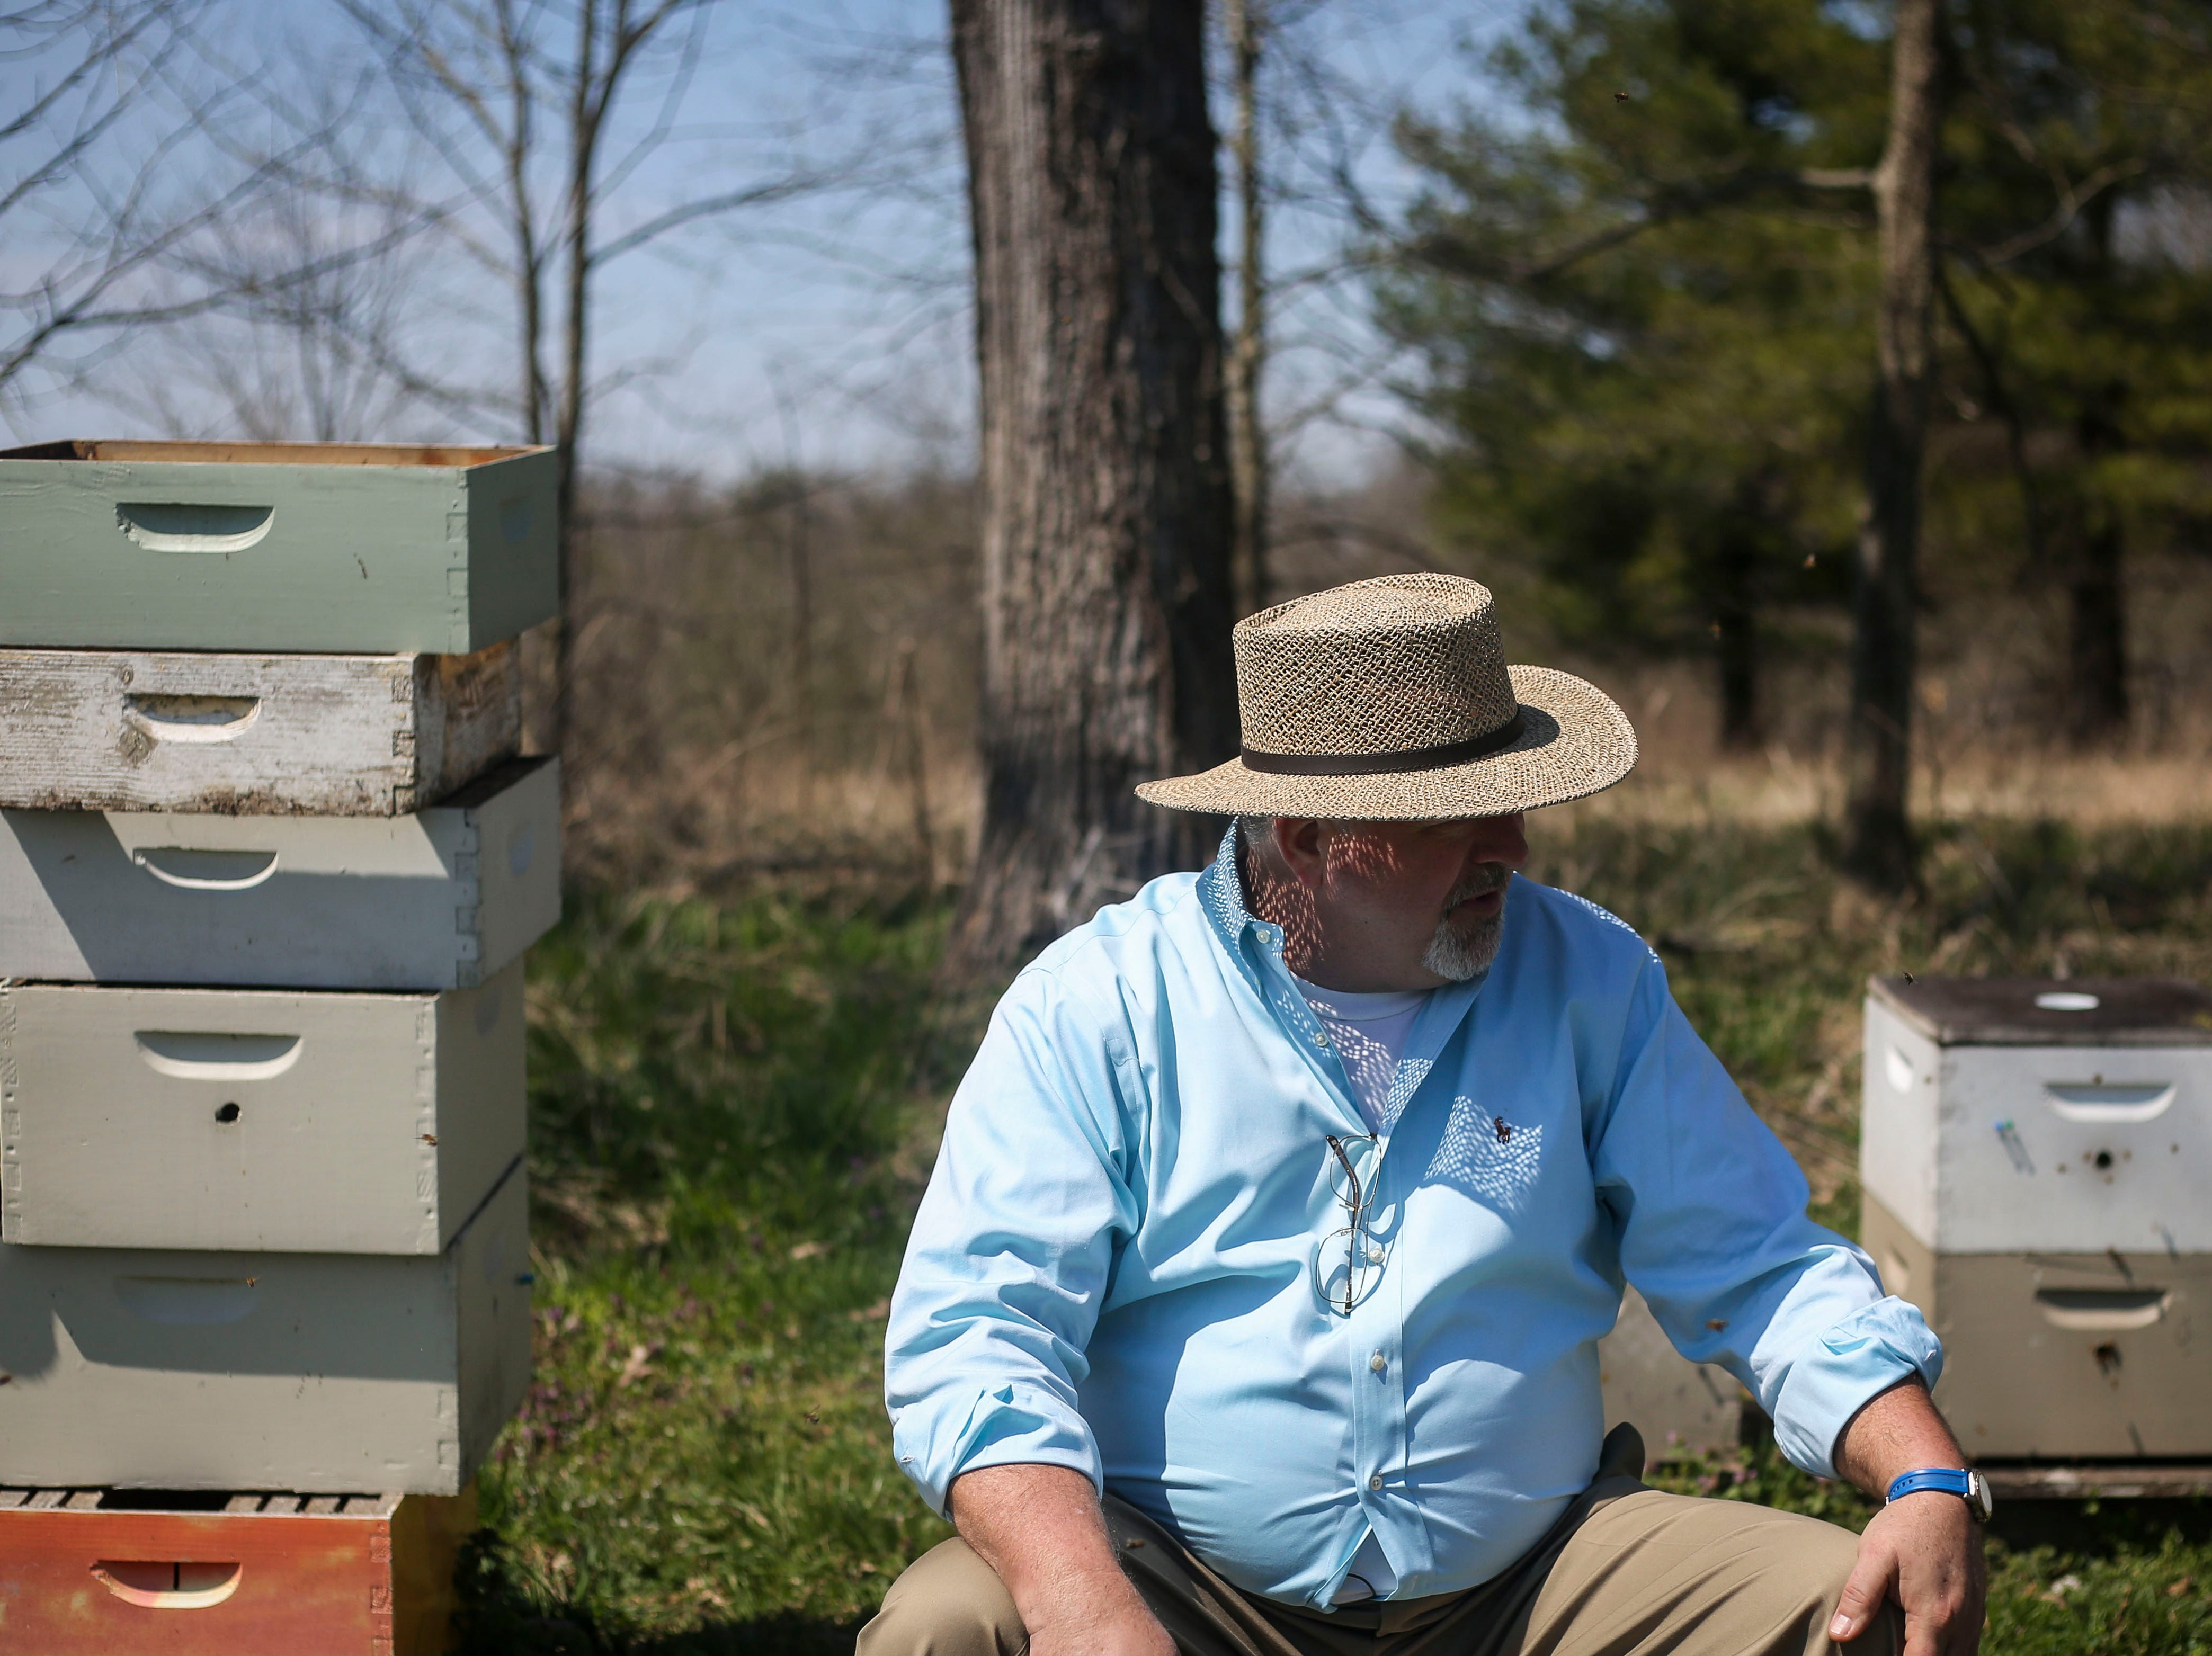 Richard Hosey, owner of Hosey Honey, a small family run honey company, sits for a portrait in his bee yard in Midway, Ky. on Wednesday, April 3, 2019. Their Hosey's Queen's Triple Crown honey is used in the sweetener in the $1,000 Woodford Reserve Kentucky Derby mint julep.